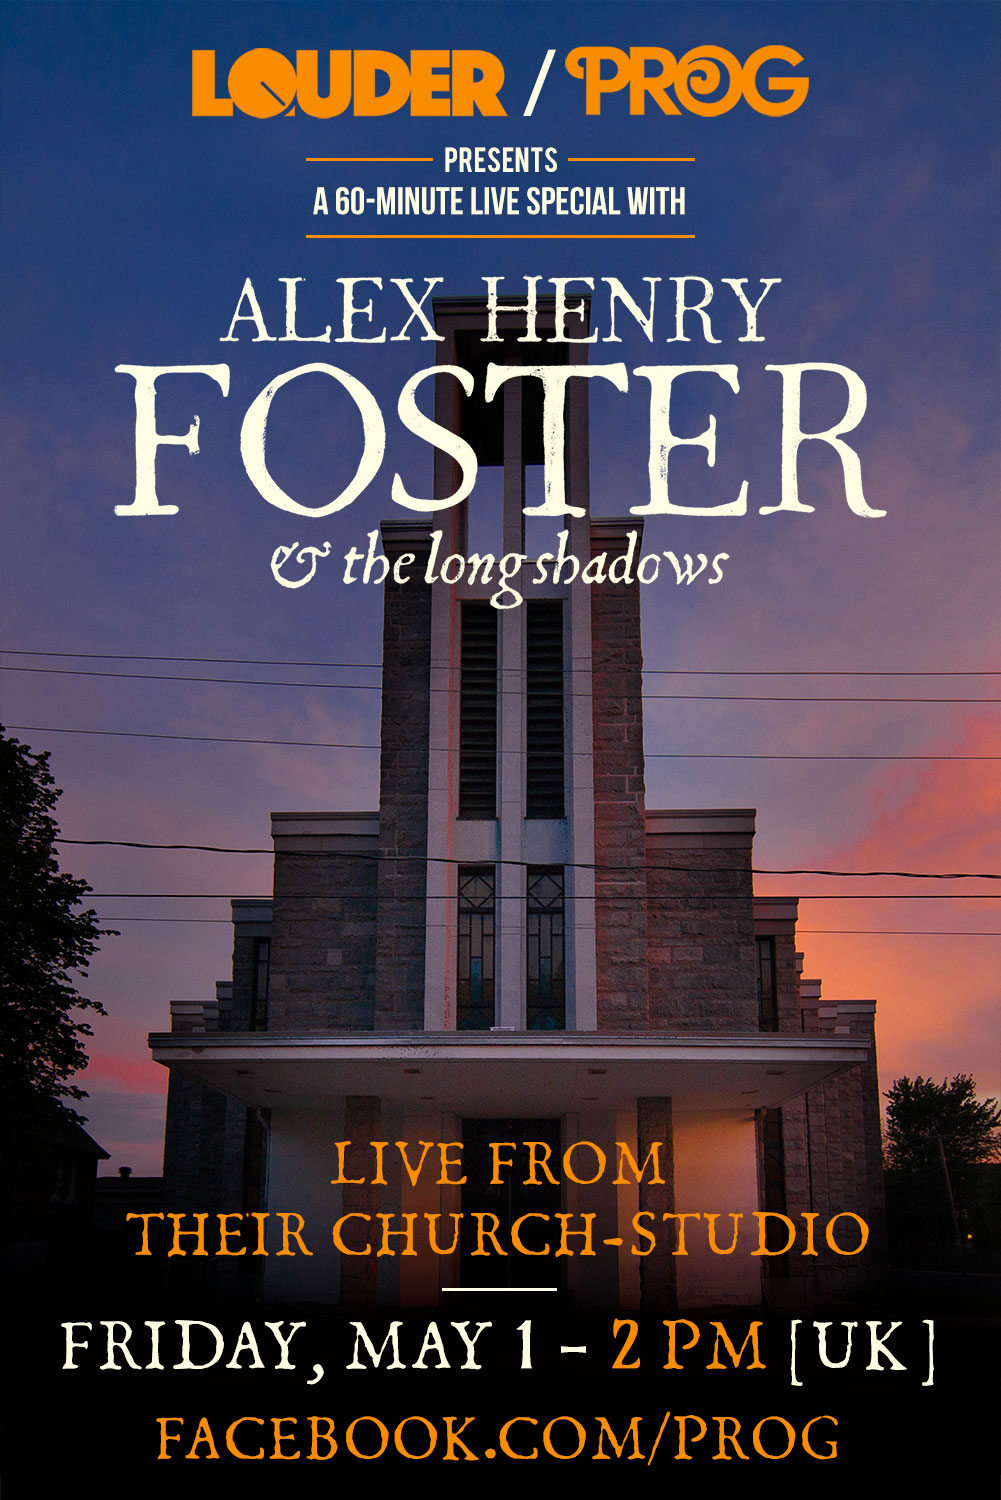 alex henry foster live special